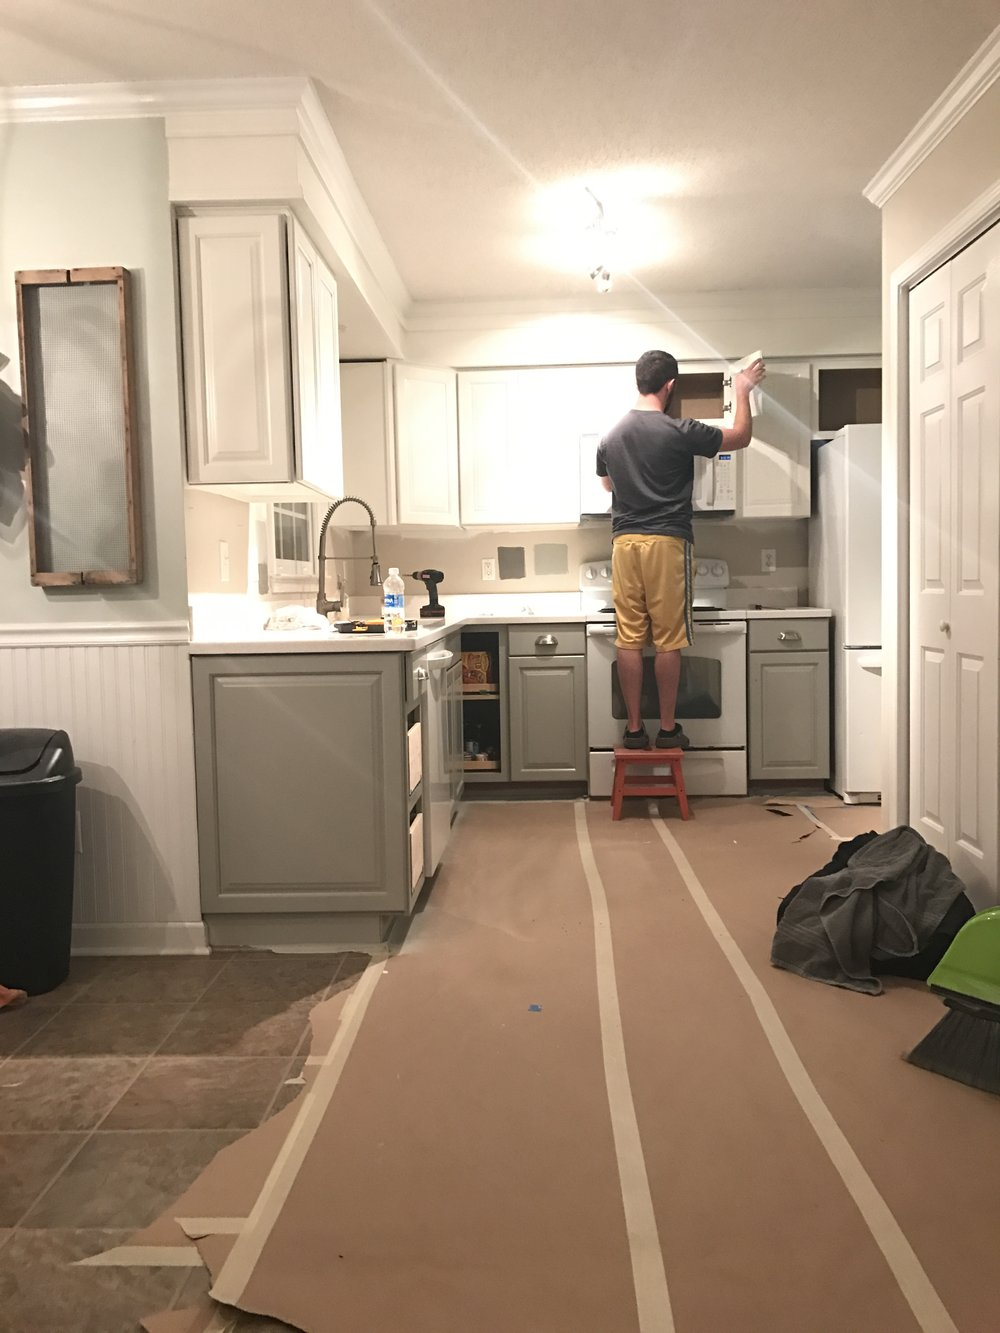 Painted_Kitchen_Cabinets_Putting_Doors_Back_On.JPG